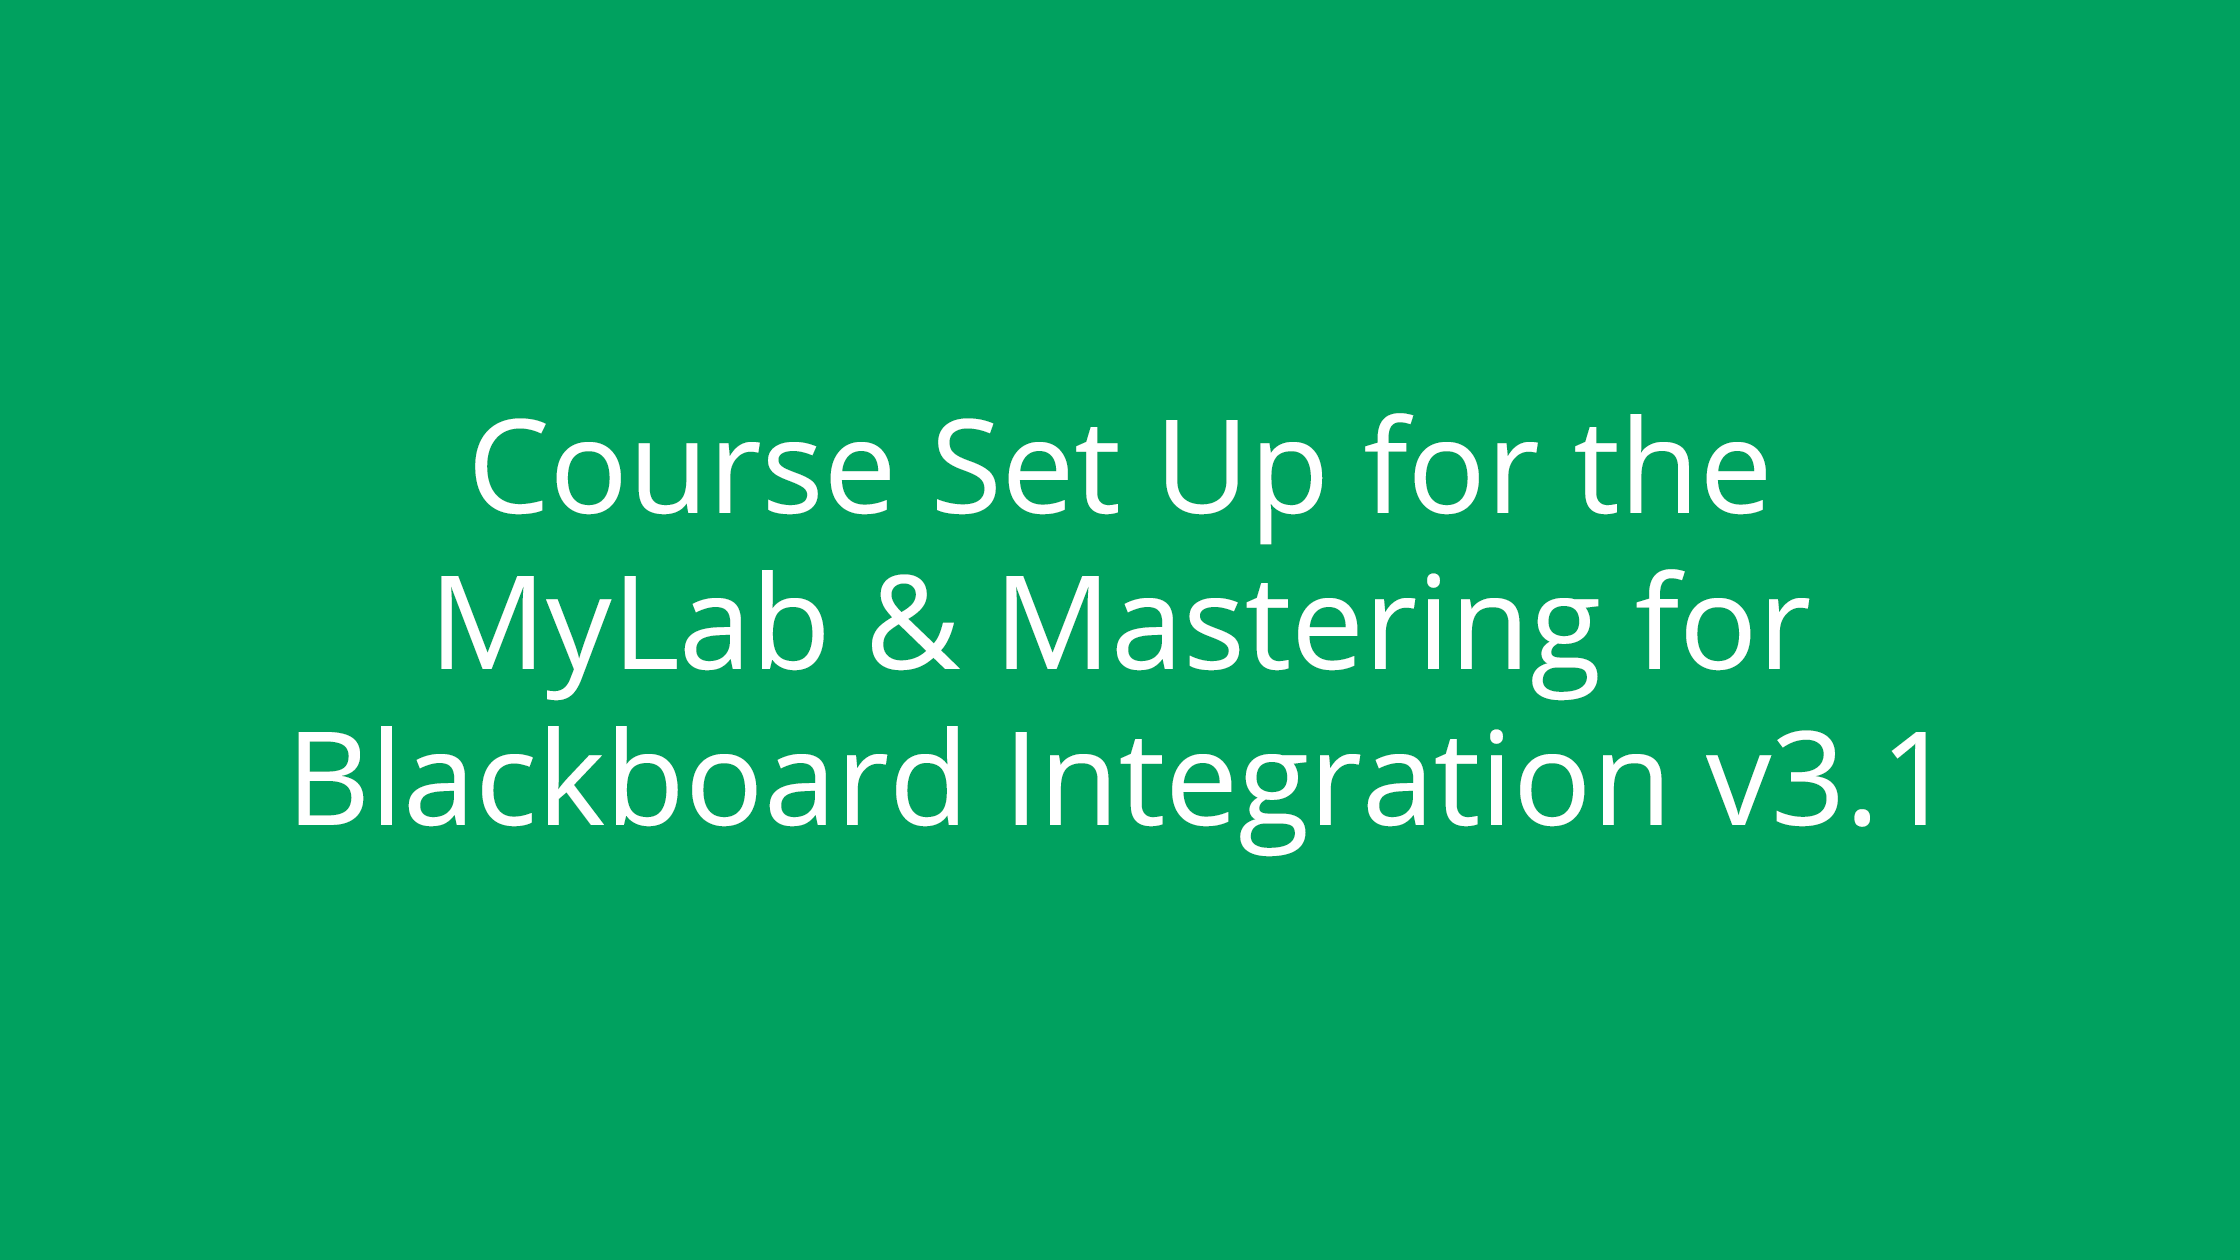 Course Set Up for the MyLab & Mastering for Blackboard Integration v3.1